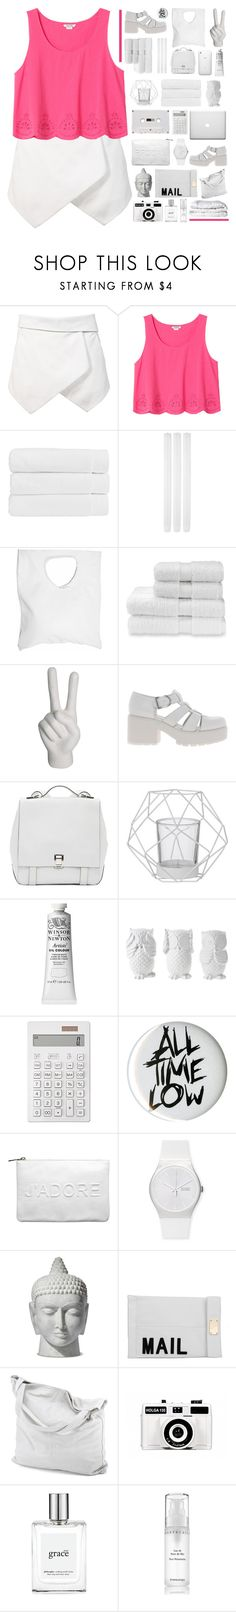 """HOW I WANT IT"" by everything-is-peachy ❤ liked on Polyvore featuring Monki, Christy, Jennifer Haley, nOir, Vagabond, Proenza Schouler, Bloomingville, Design 55, Muji and Hot Topic"